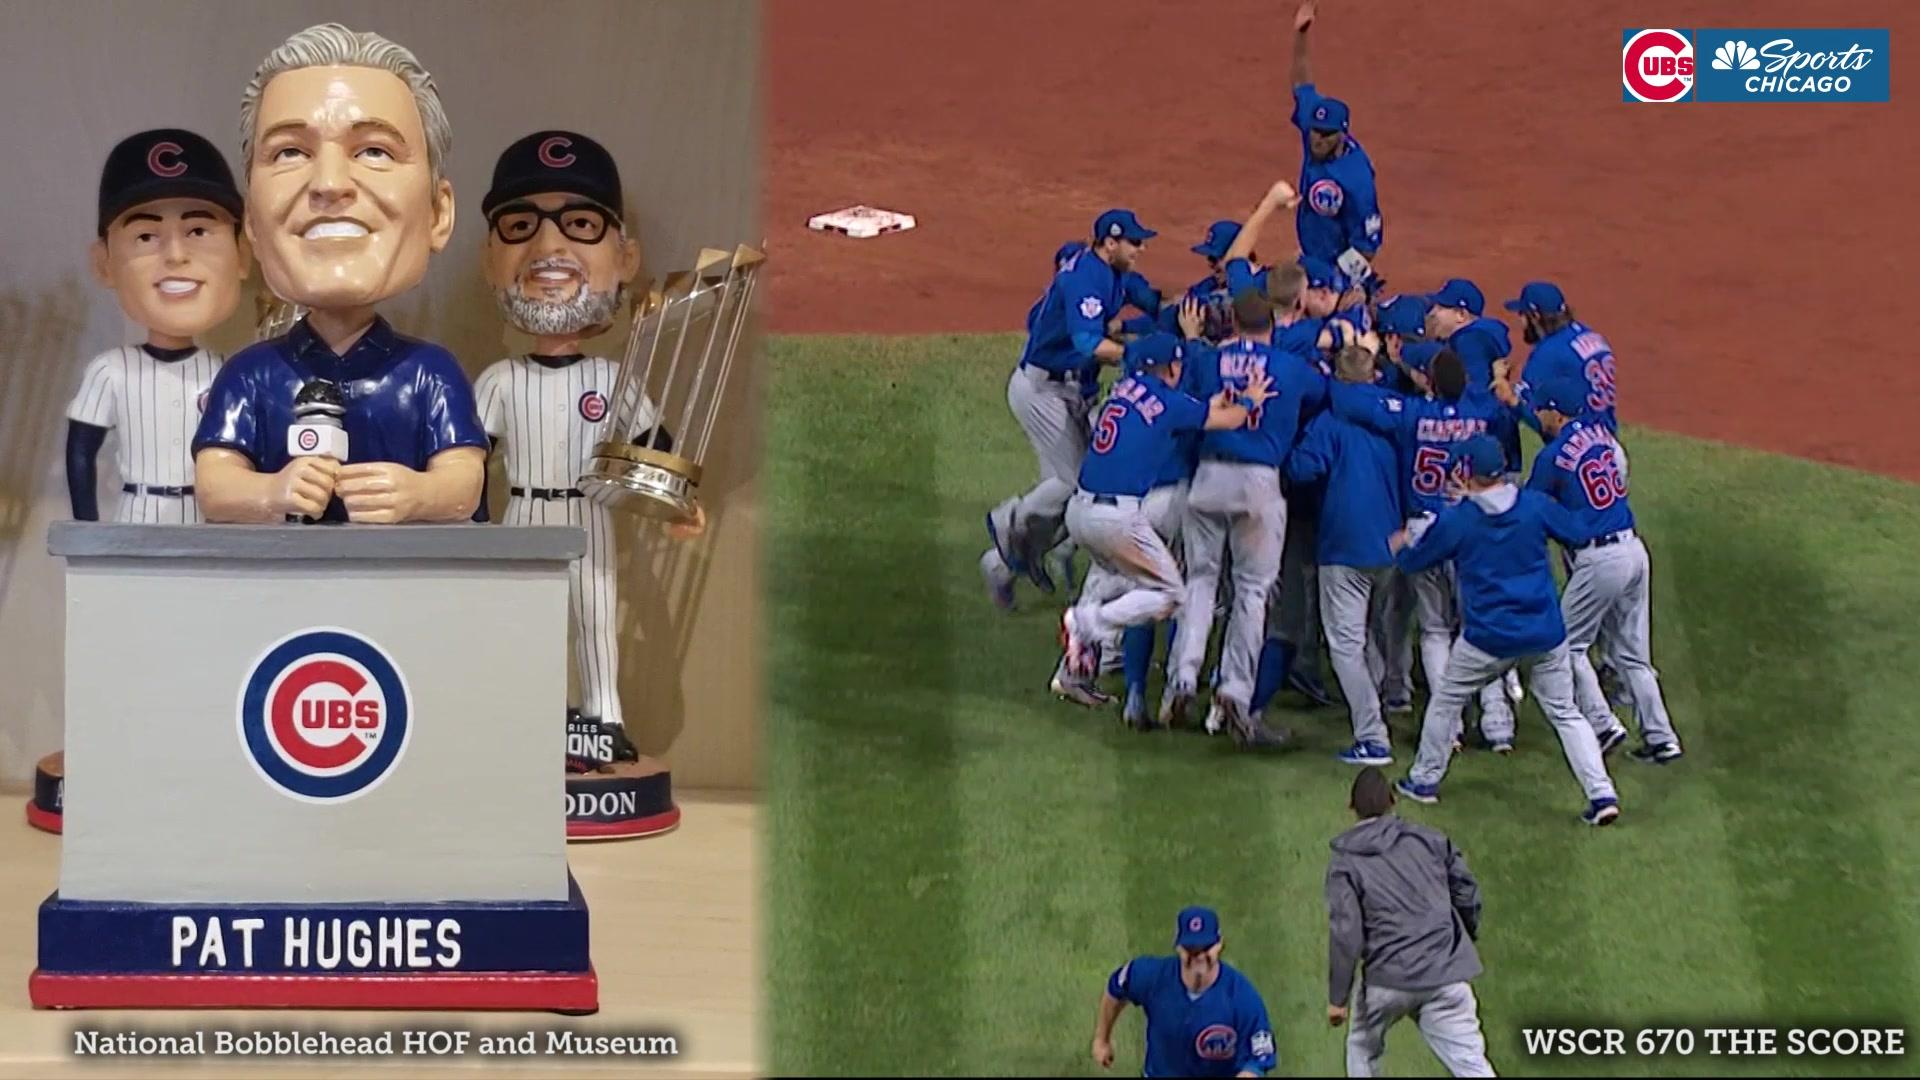 Pat Hughes World Series Bobblehead with audio unveiled